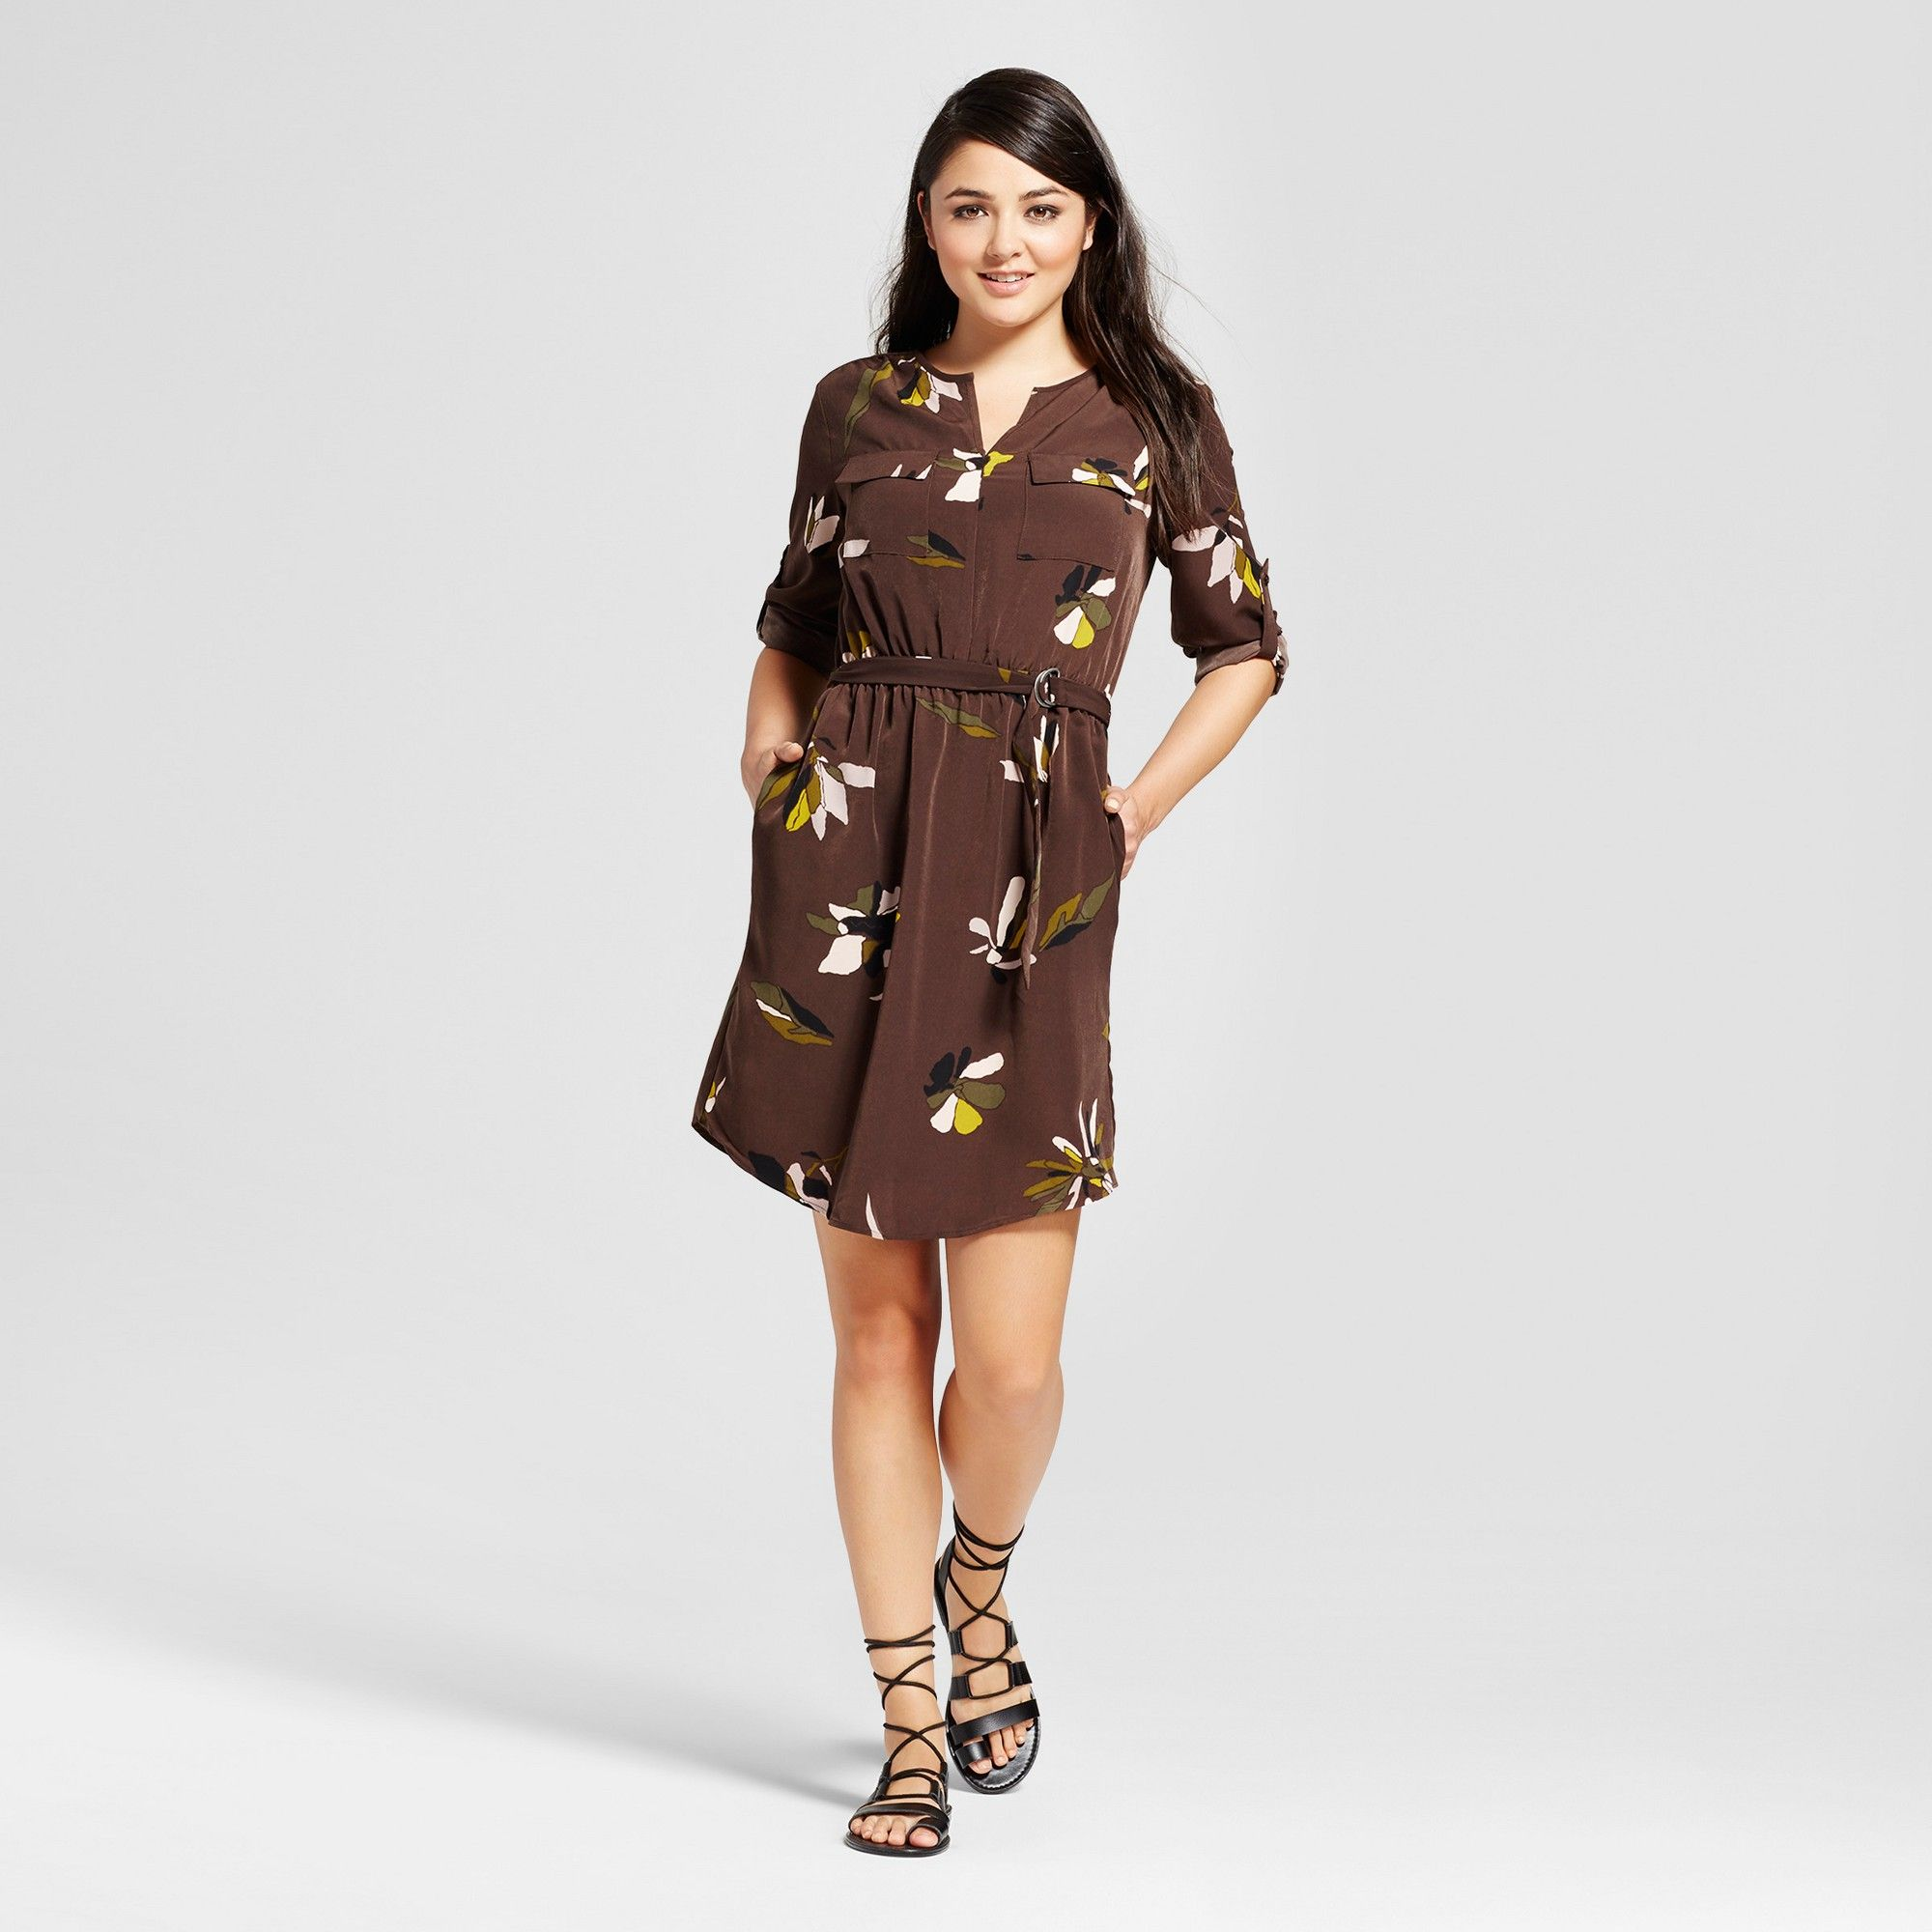 Looks - Convertible target dress how to wear video